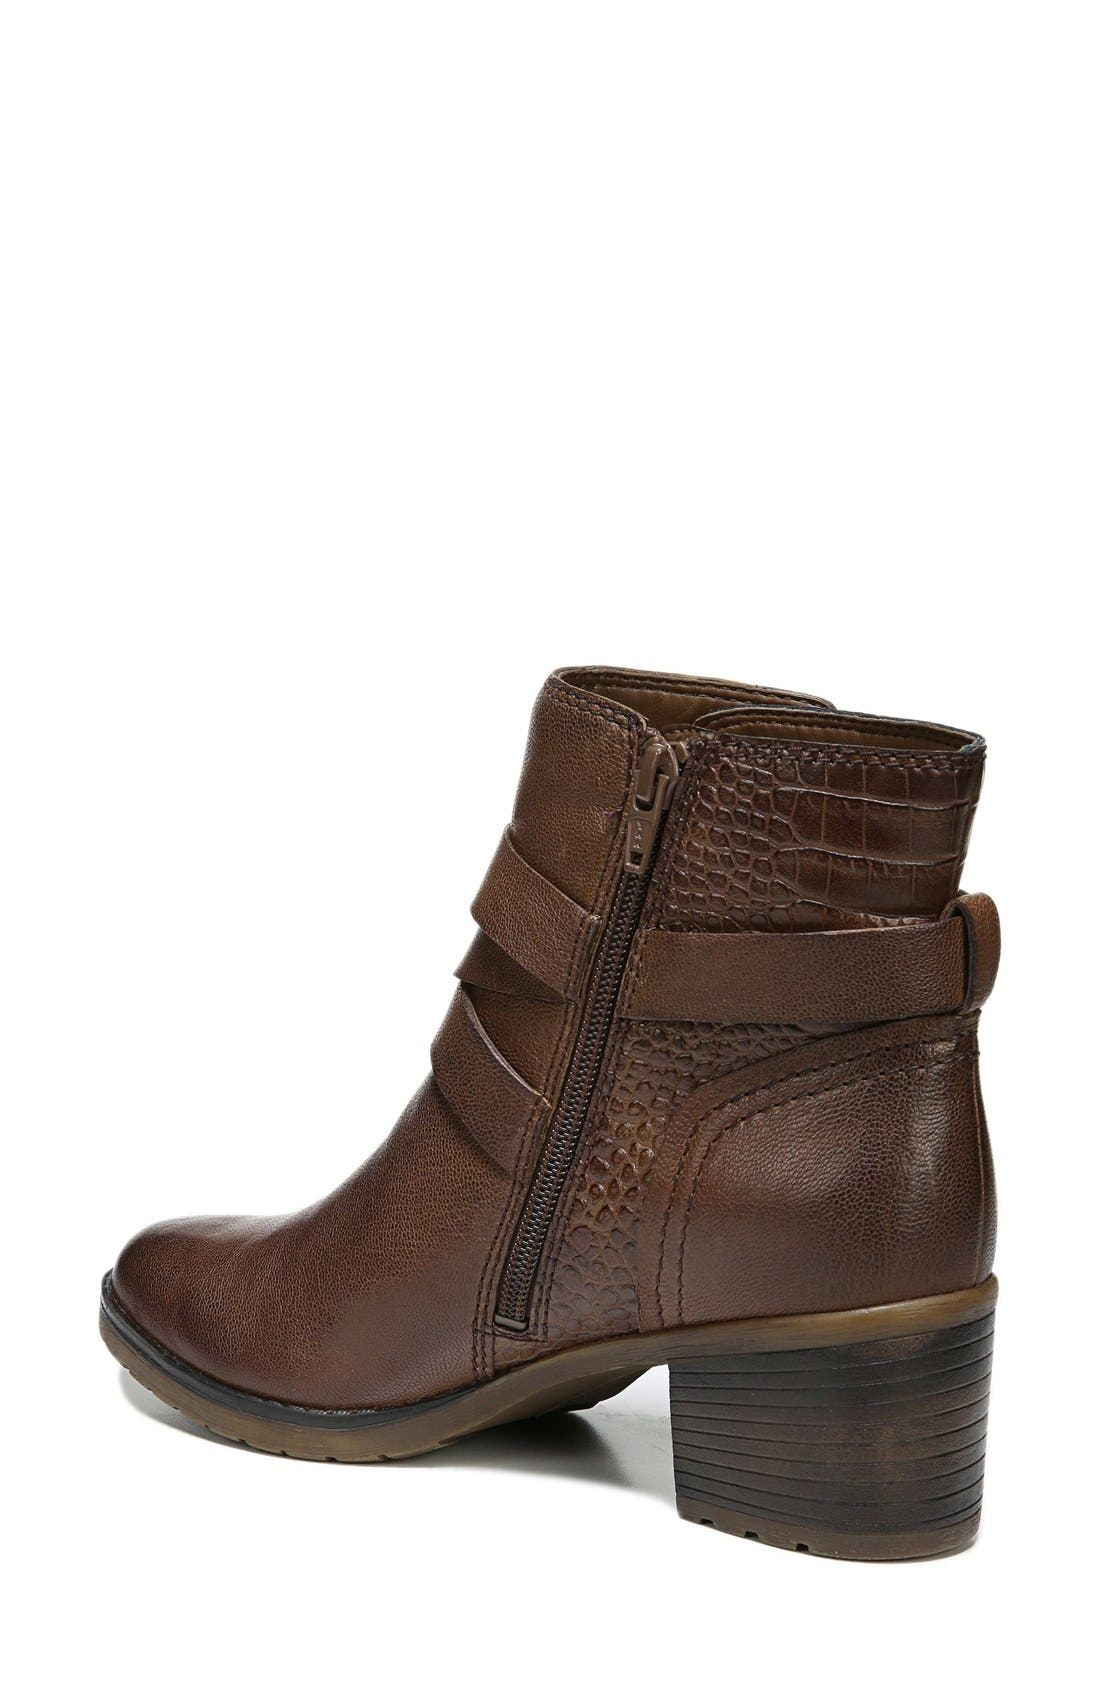 'Ringer' Boot,                             Alternate thumbnail 2, color,                             Tan Leather